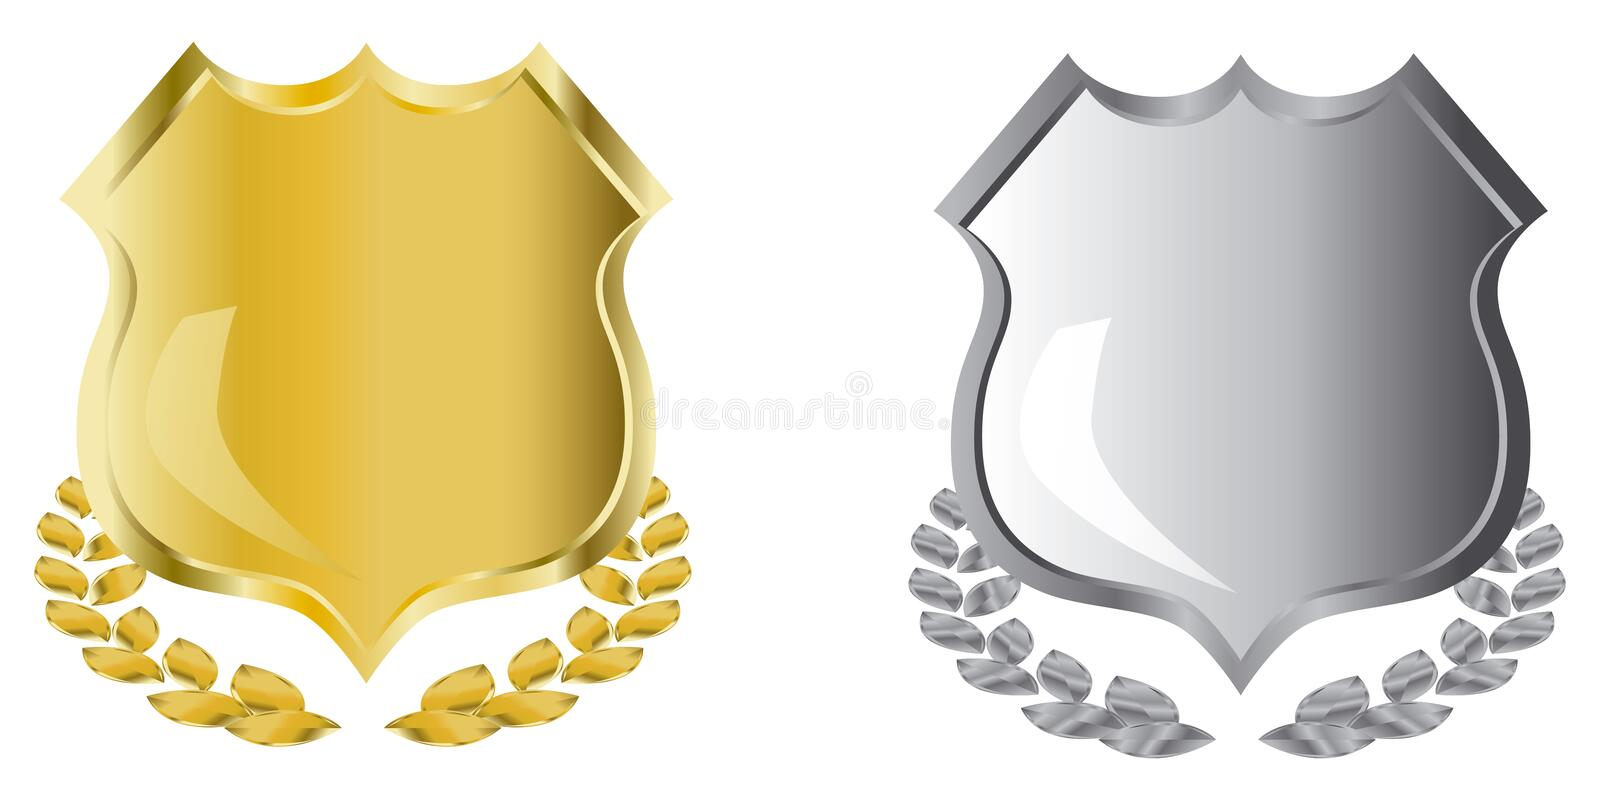 Golden and silver shields stock illustration